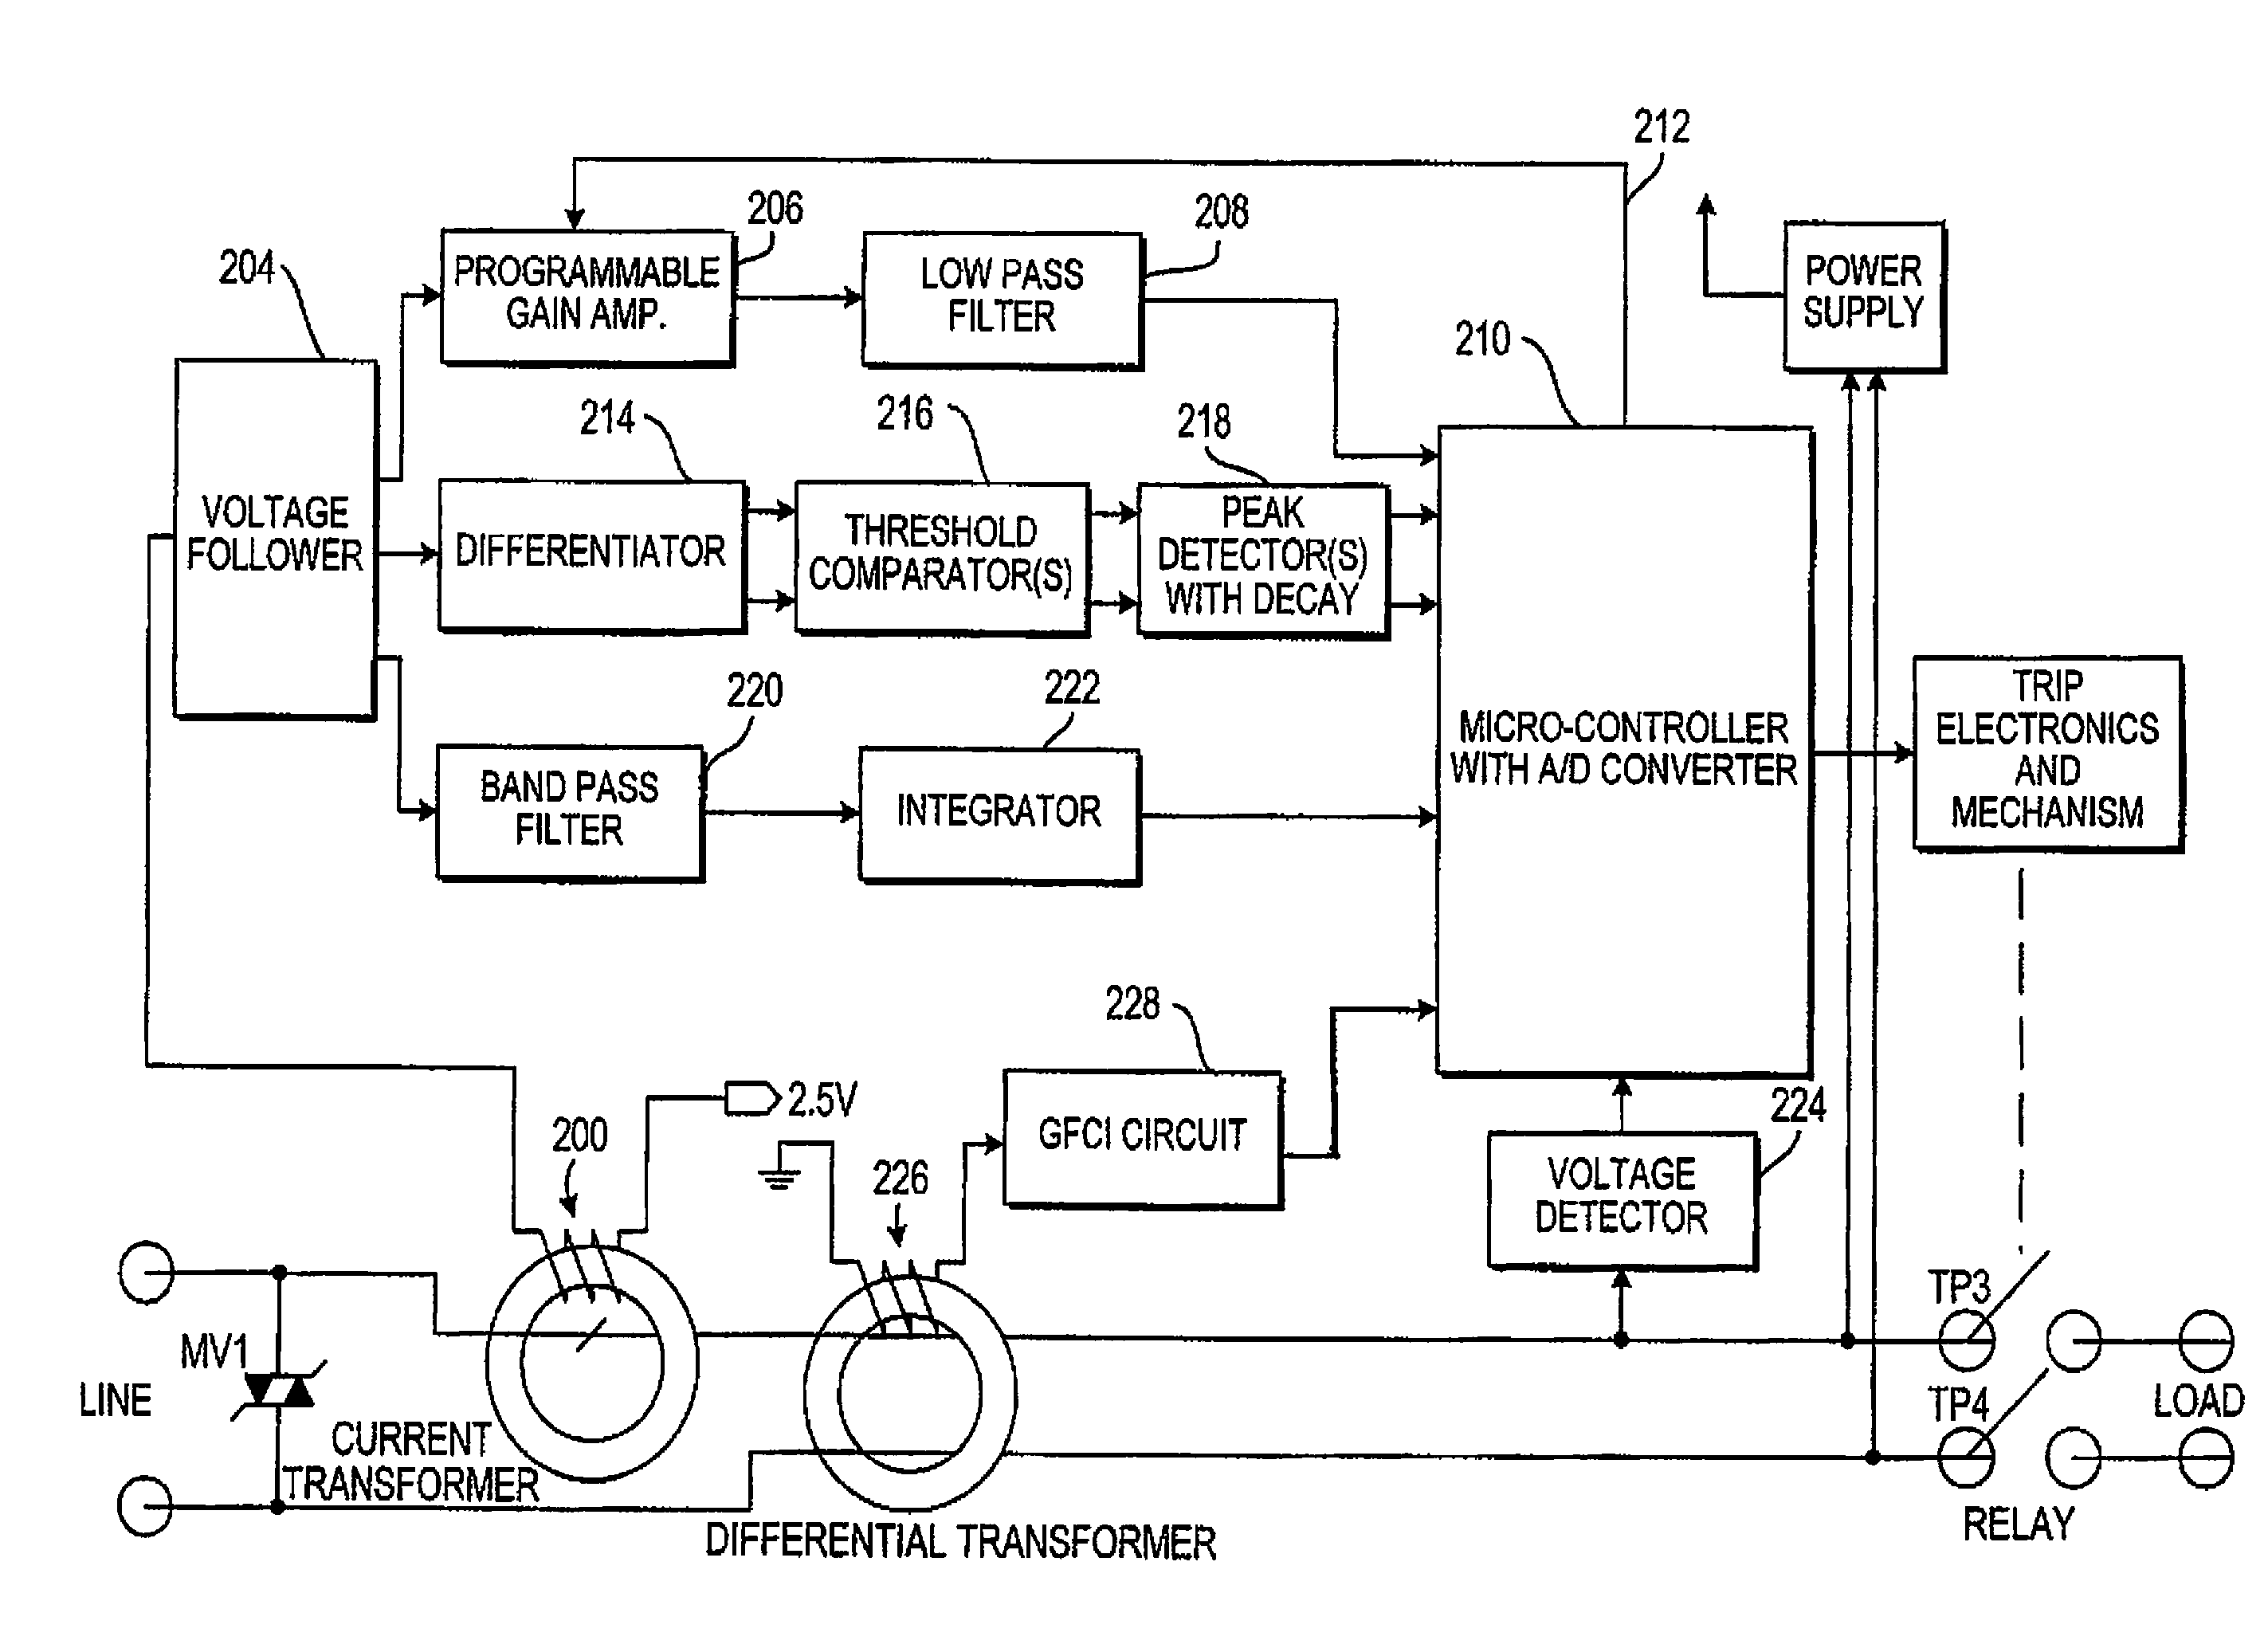 Brevet Us8564307 Arc Fault Detector With Circuit Interrupter Or Afci Fundamentals Patent Drawing